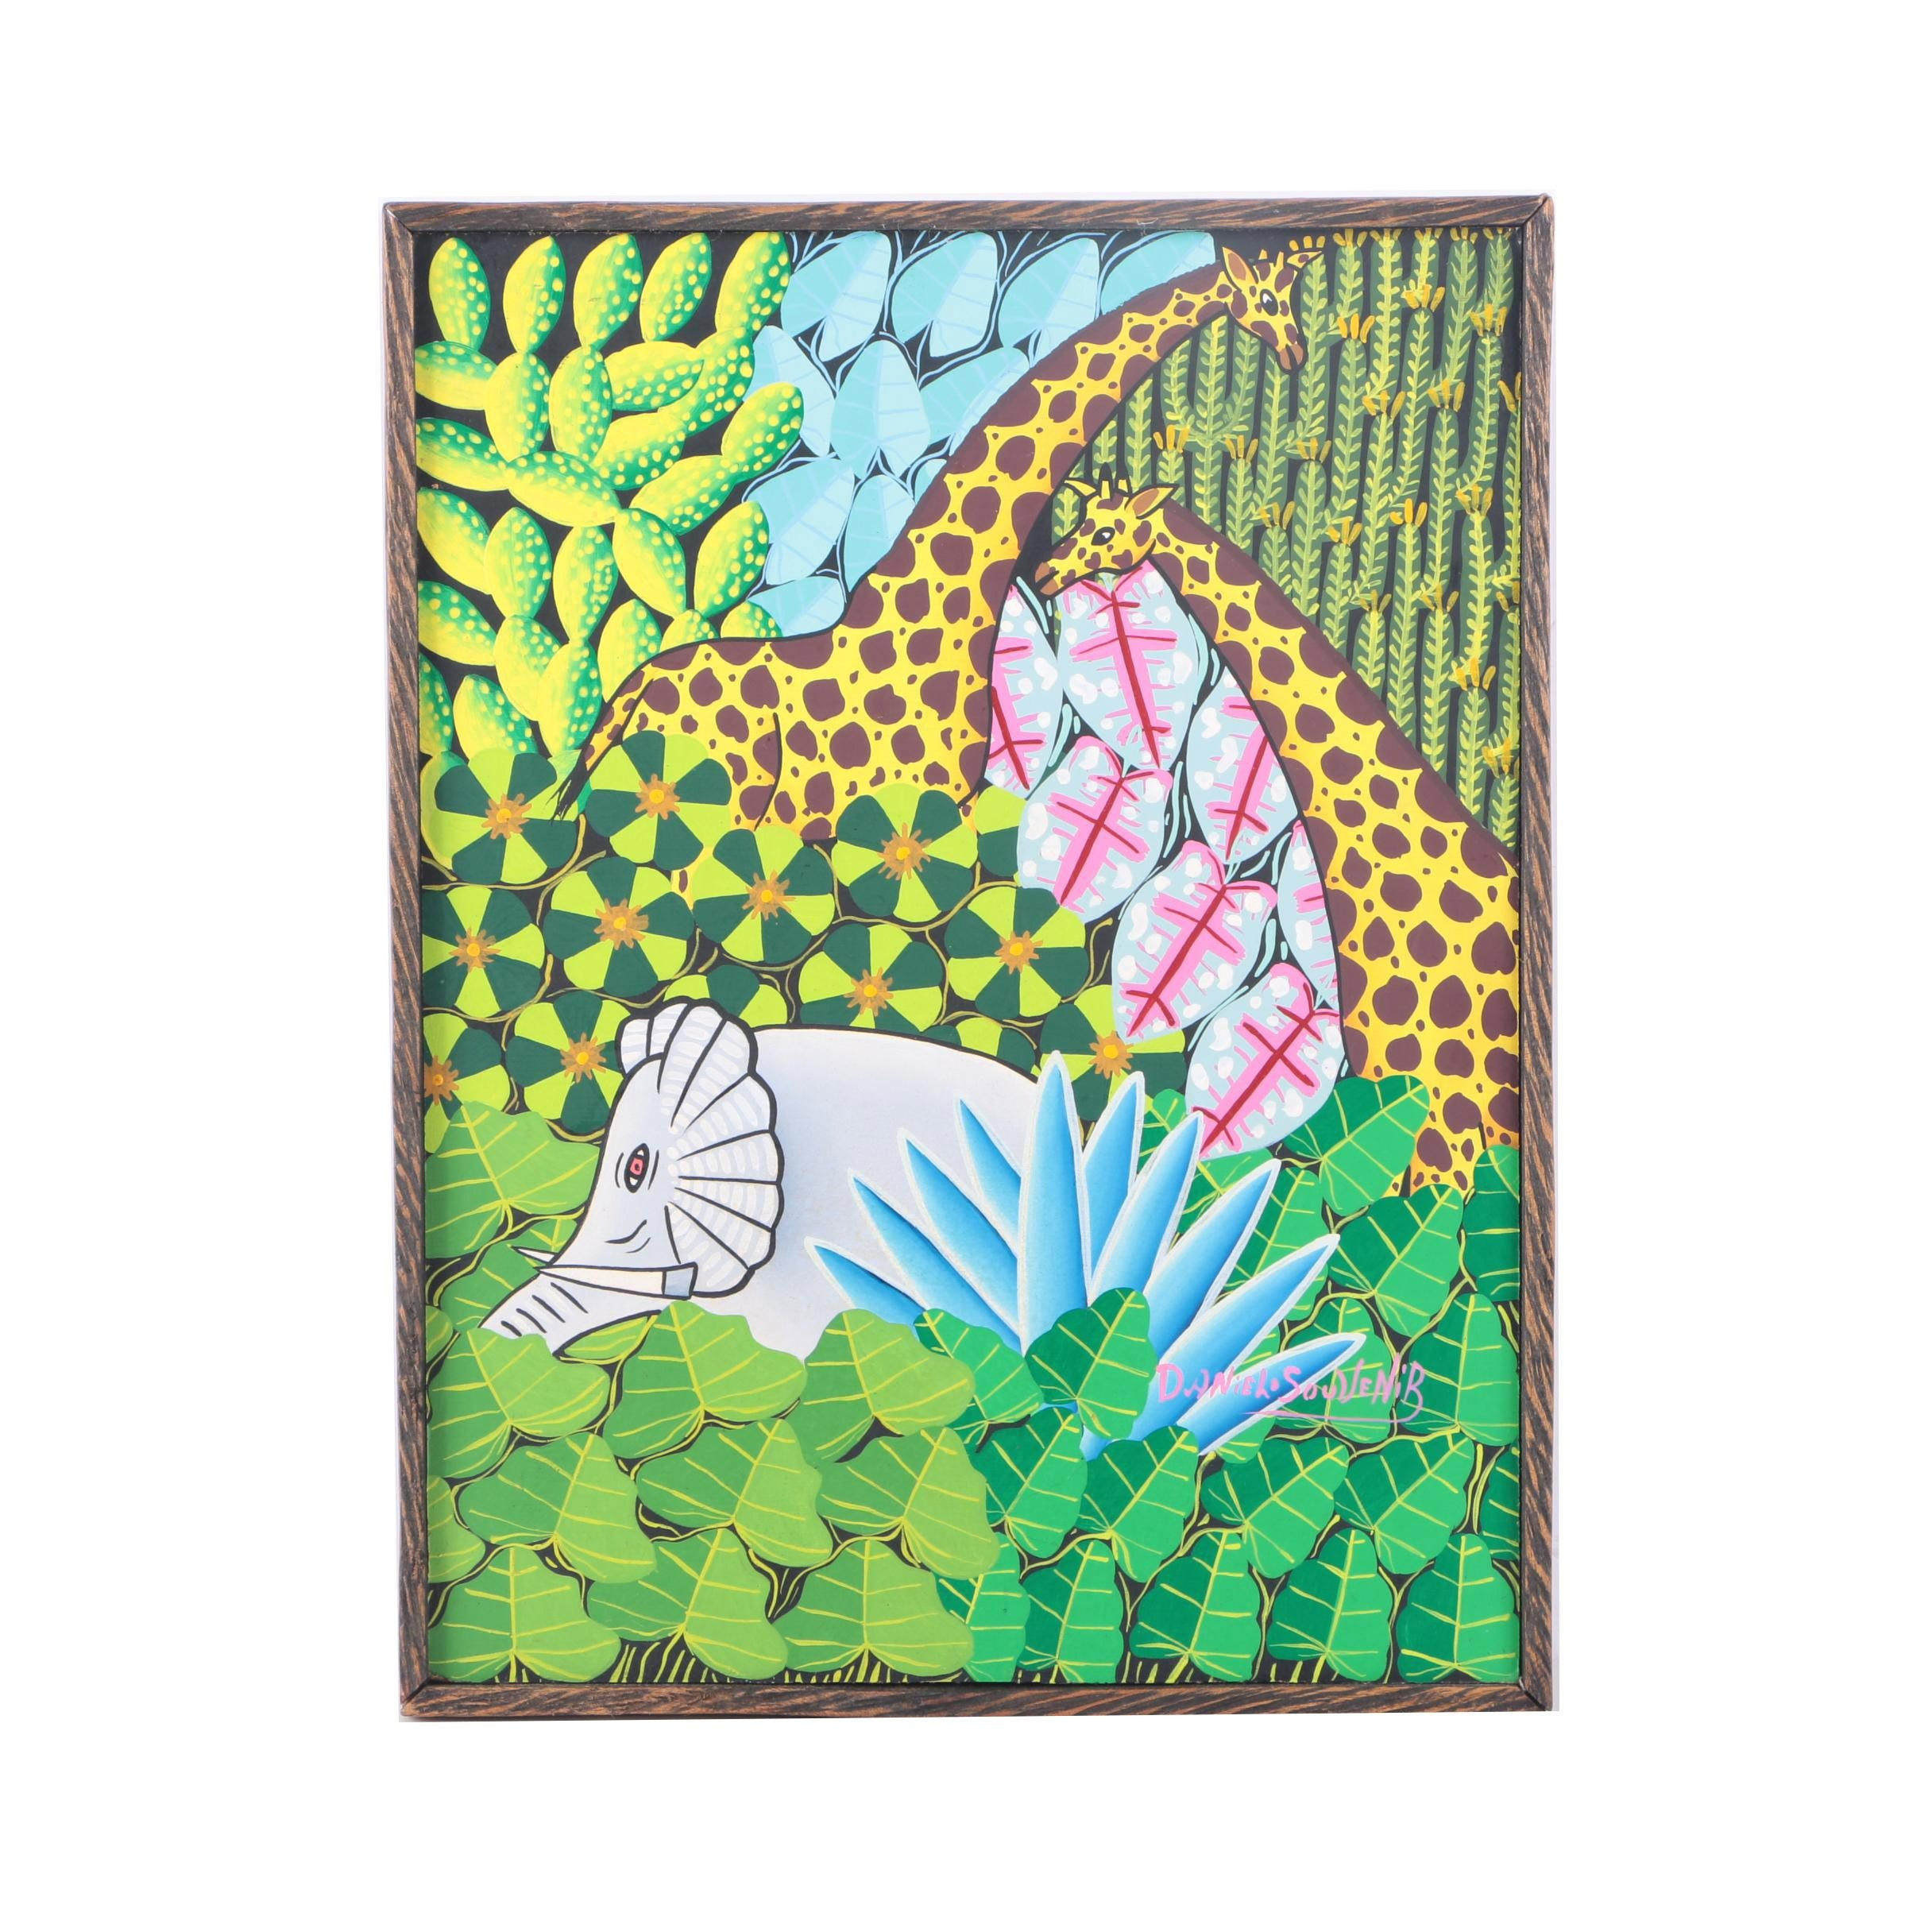 Daniel Souvenir Acrylic Painting of Animals in the Jungle